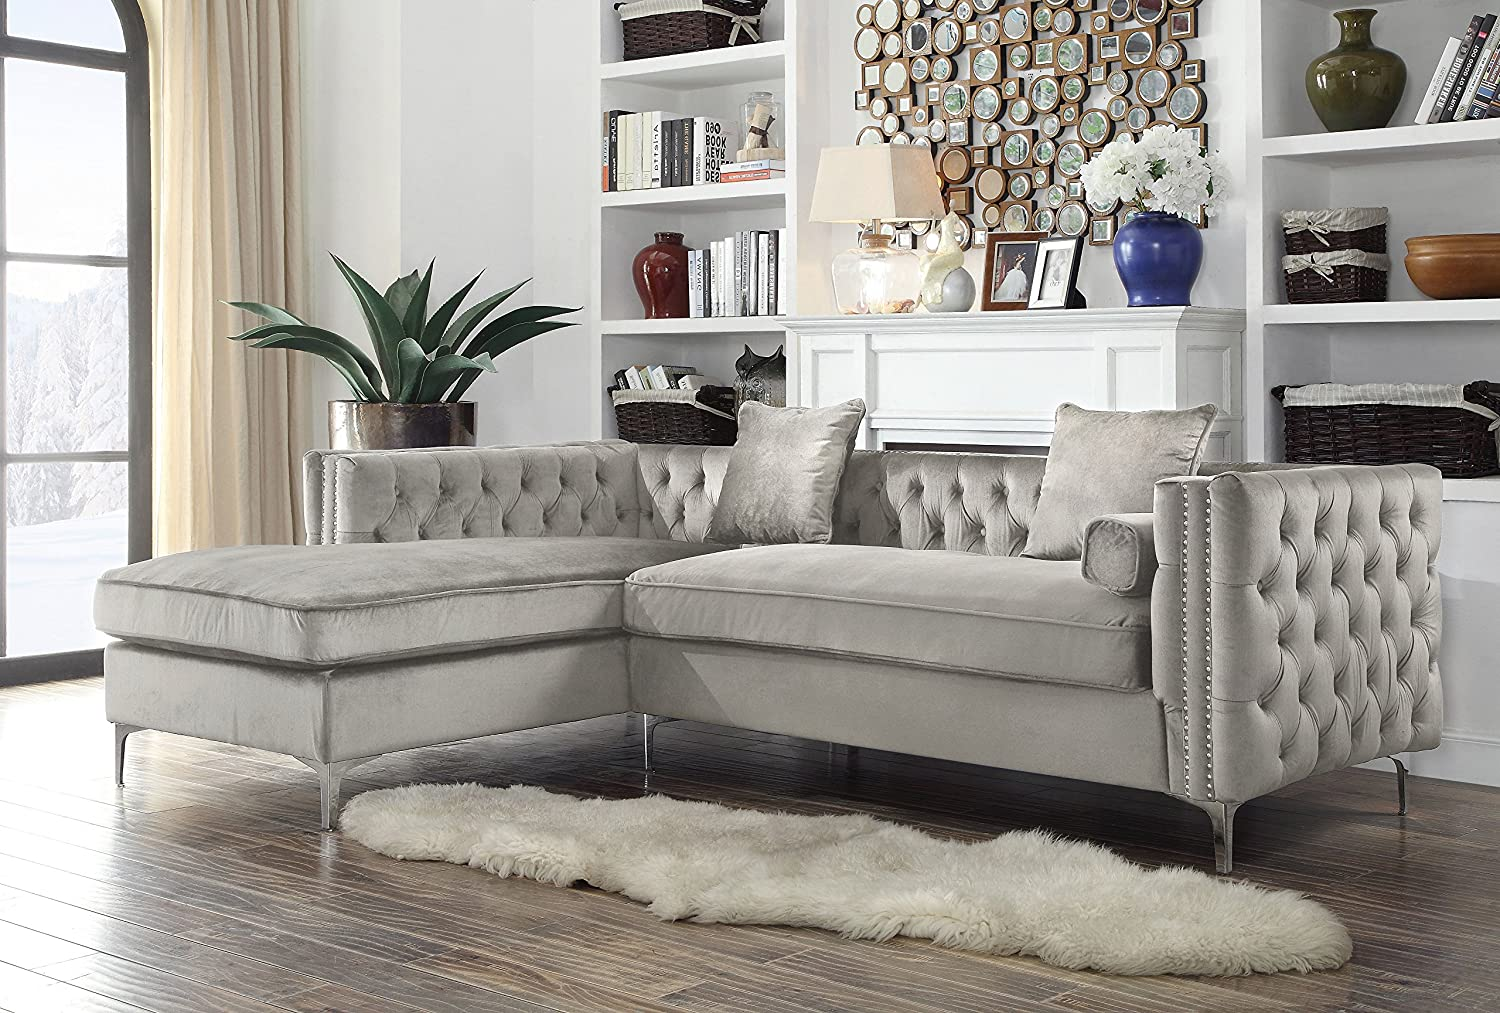 Iconic home chic home da vinci velvet modern contemporary button tufted with silver nailhead trim silvertone metal y leg left facing sectional sofa silver